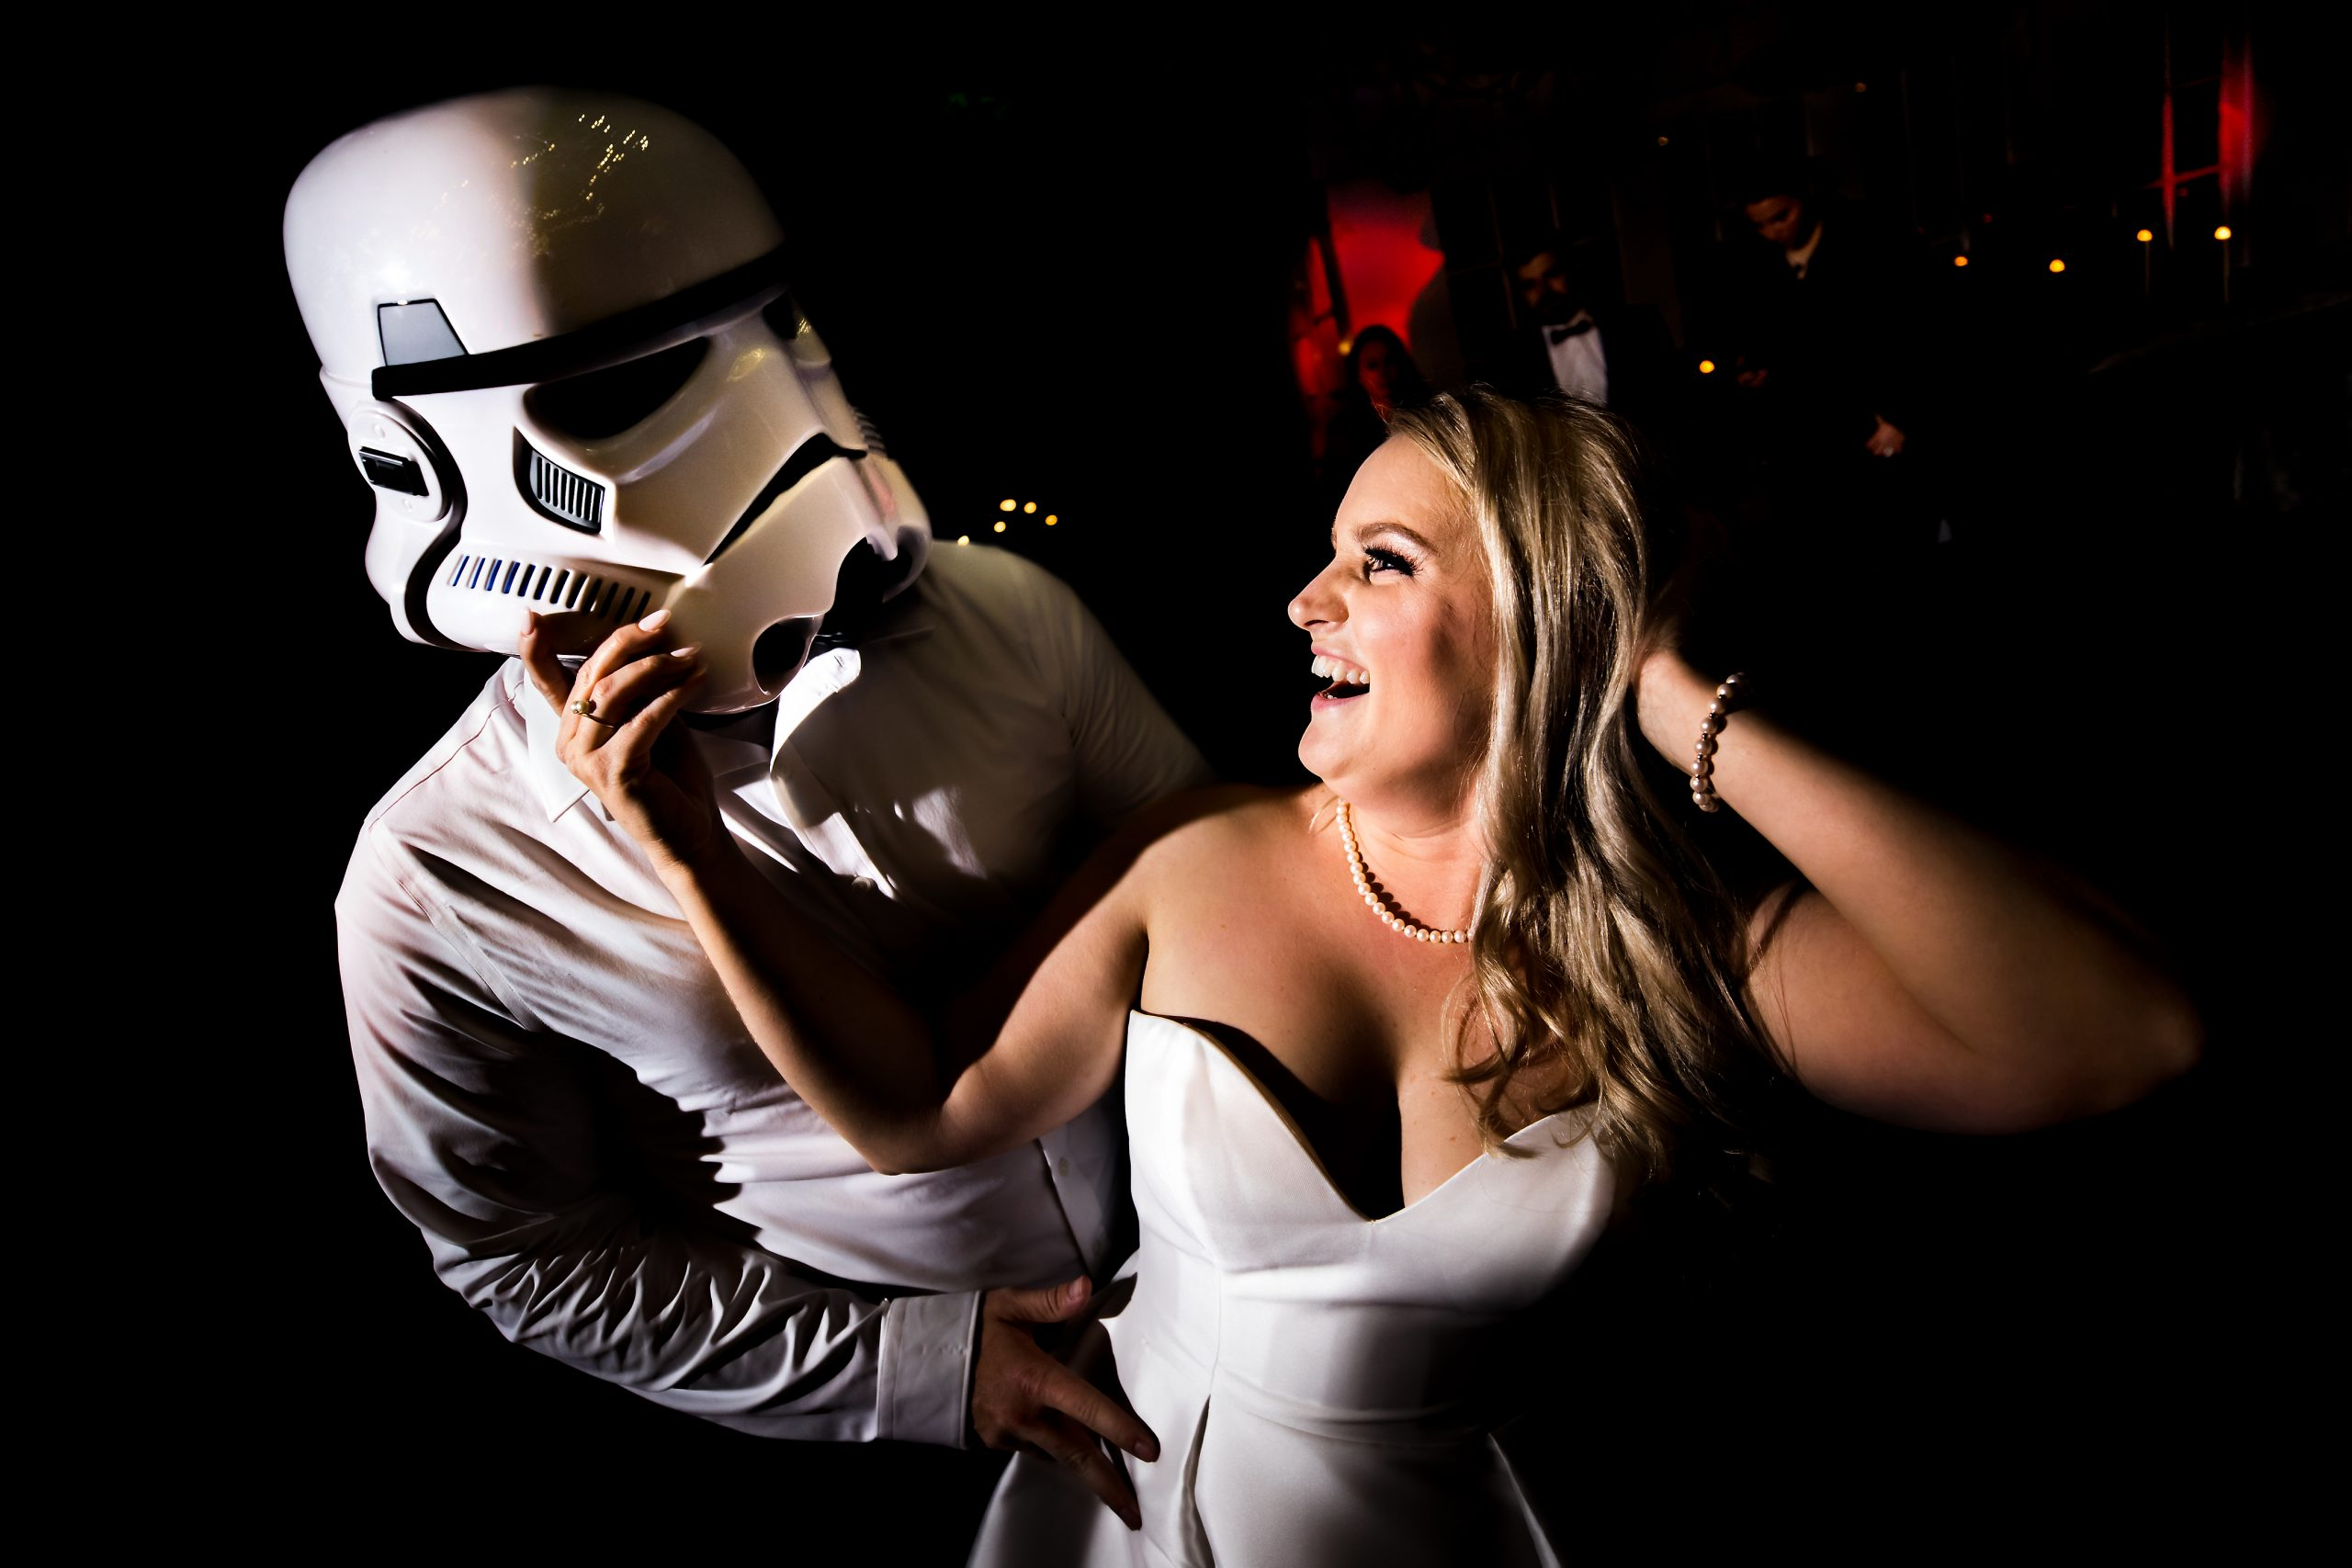 Groom dons a Stormtrooper helmet during the first dance with the bride.